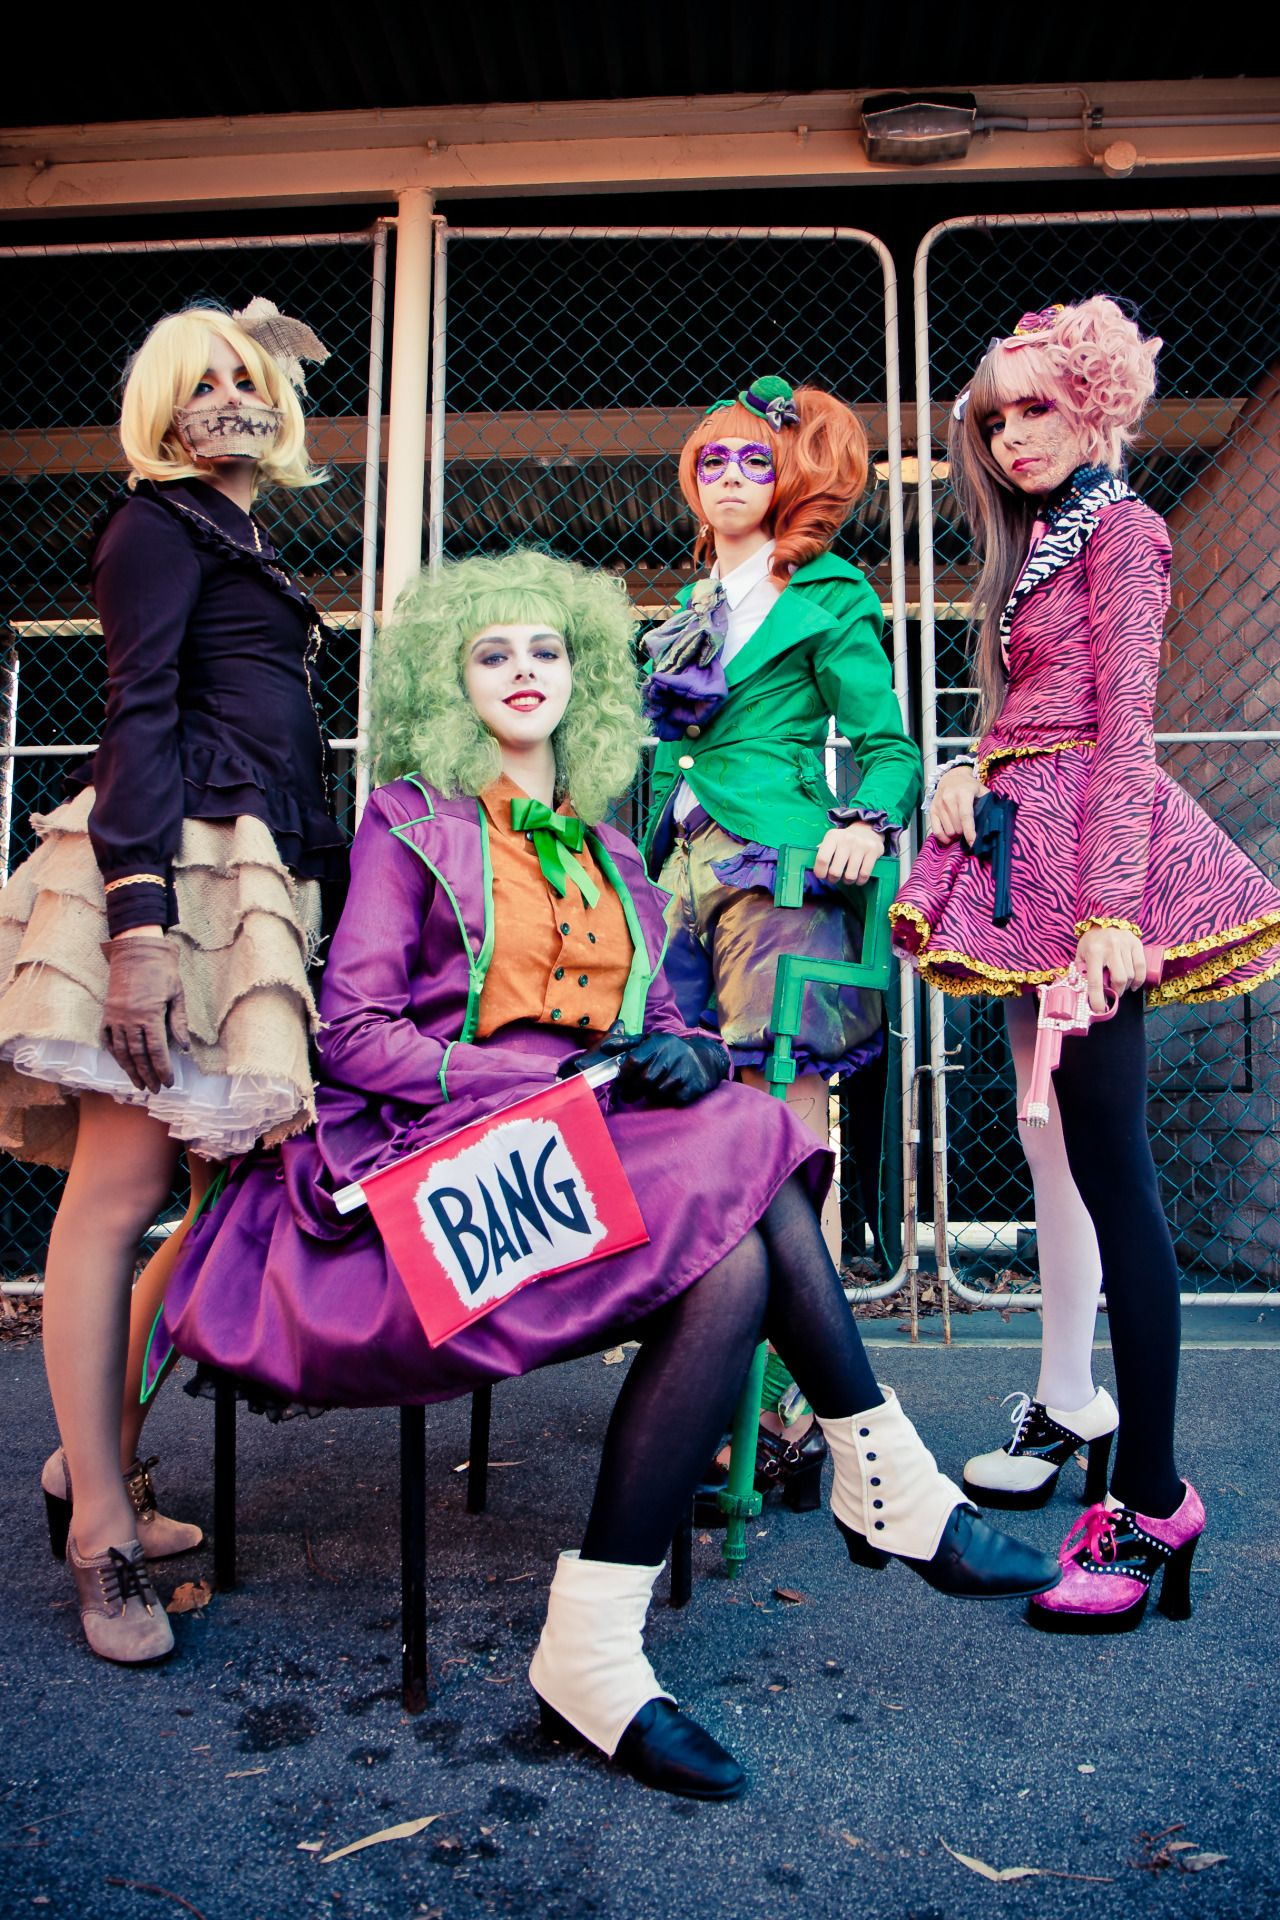 albinwonderland:  tempestpaige:  moxycrimefighter:  galaxyshiba:  Fem! Batman Villians♣Lolita inspired♣ All costumes designed by each of us.From left to right.Scarcrow- Adamantium-soulJoker- PerilousseasRiddler- LilacincrementTwo Face- GalaxyshibaPhotog-Ahbutography  SCREAMING AND CRYING  CRYING OVER THAT TWOFACE GOOD LORD  Amazing. Especially that Two Face suit, holy crap. Well done by all!